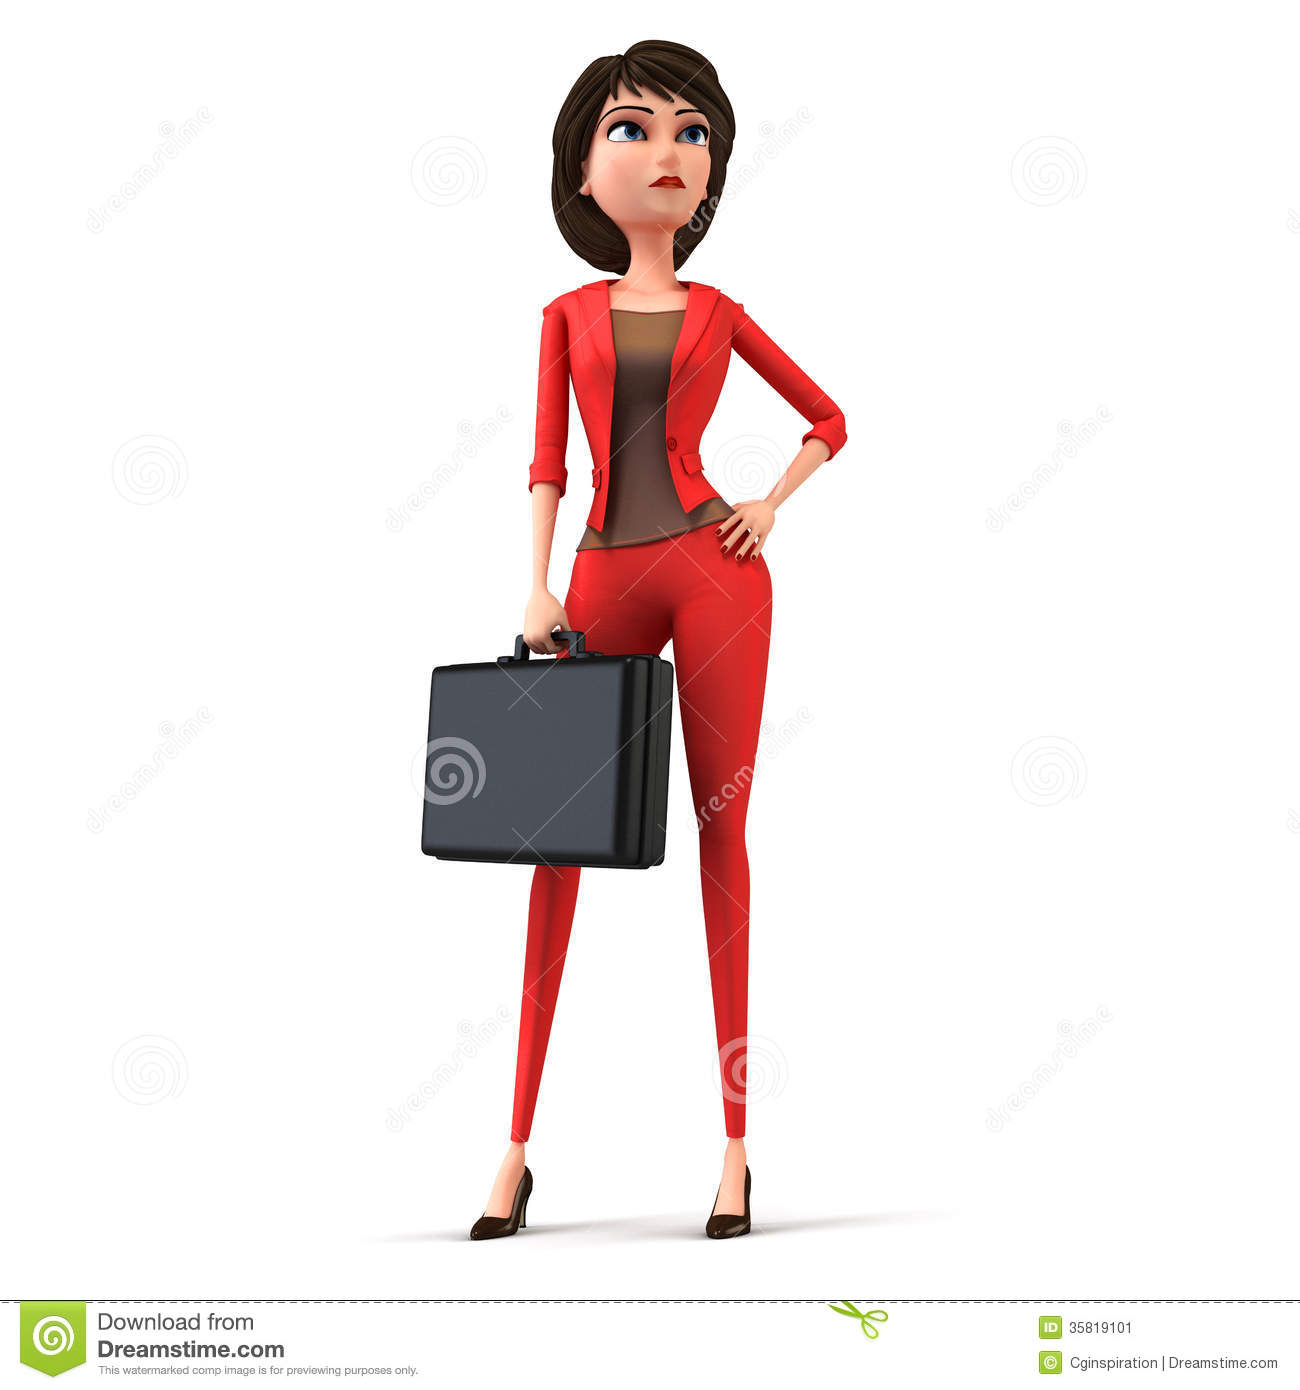 ambition-business-woman-d-clip-art-35819101.jpg